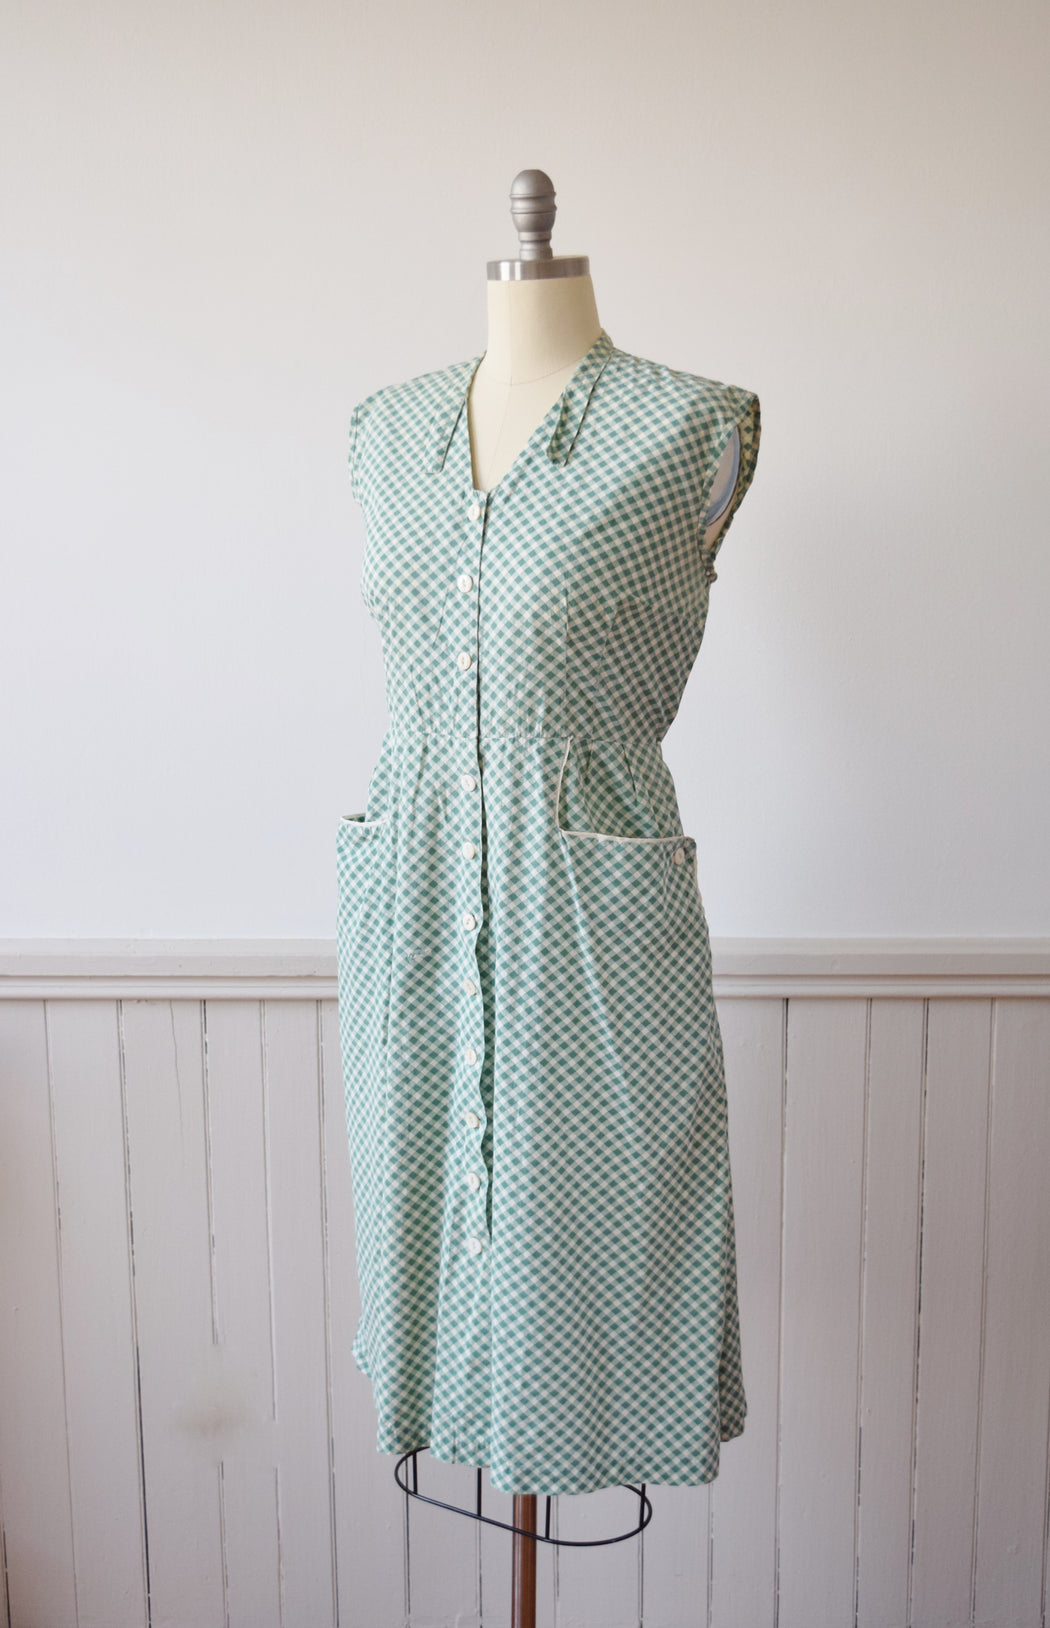 1930s/1940s Green + White Gingham Frock | Day Dress